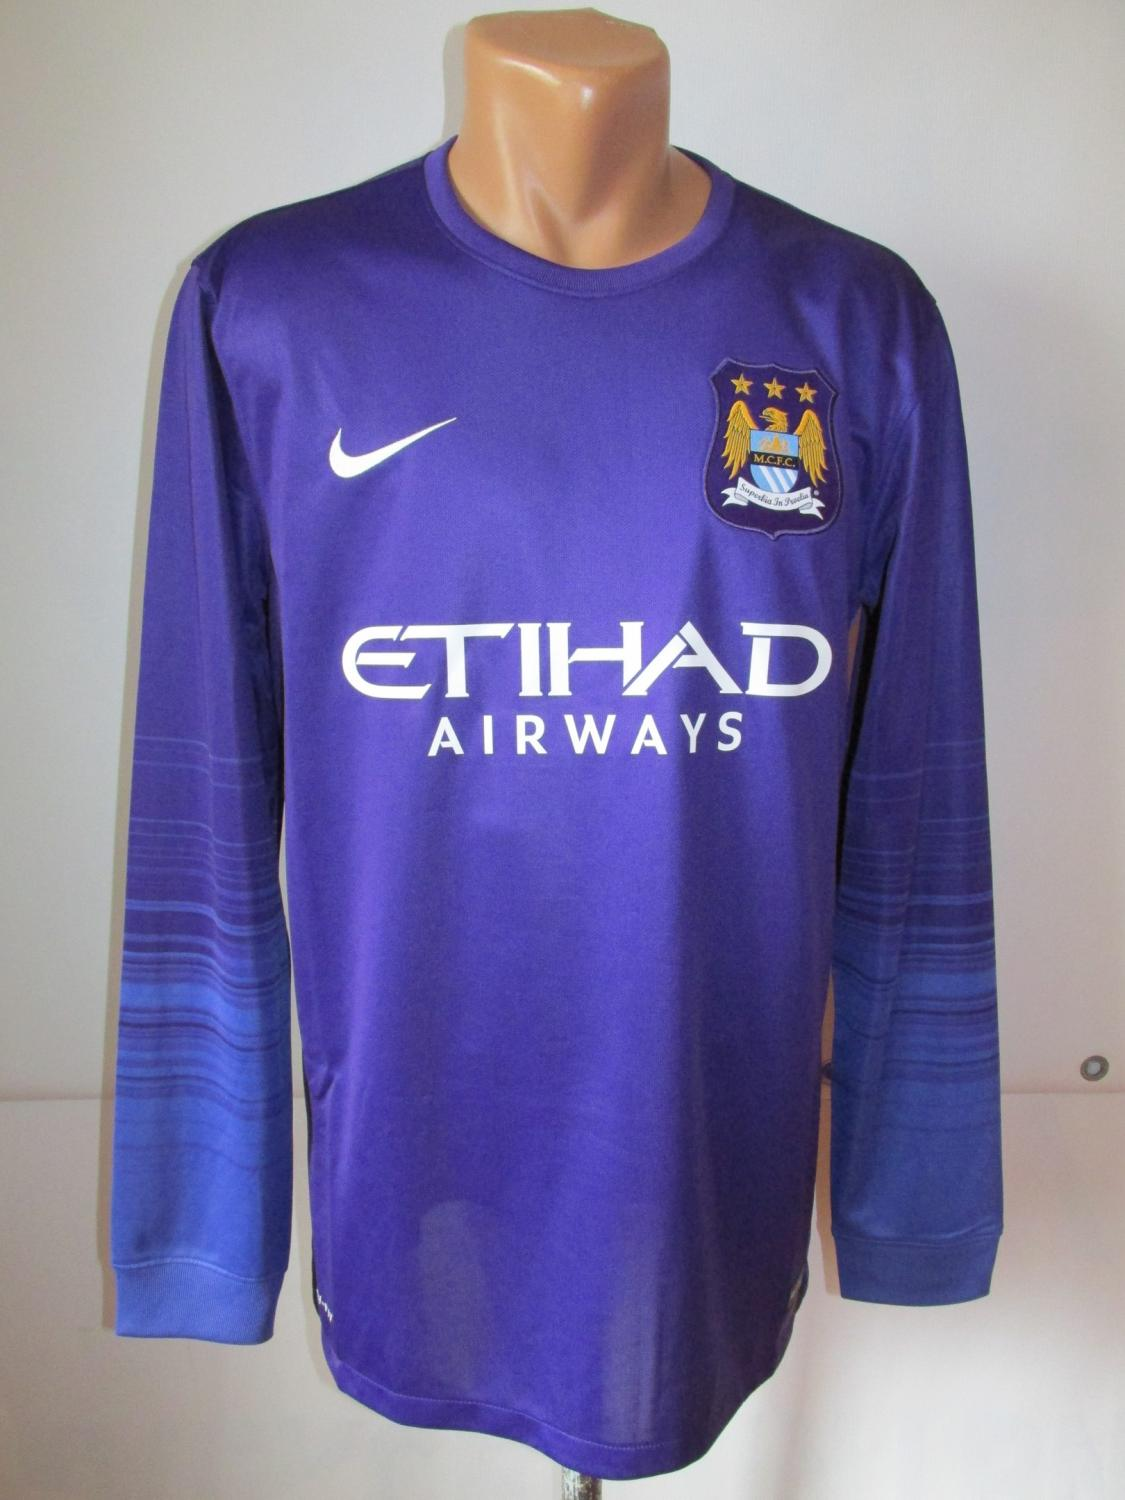 b47f8ff00 Manchester City Goalkeeper maglia di calcio 2015 - 2016. Sponsored ...